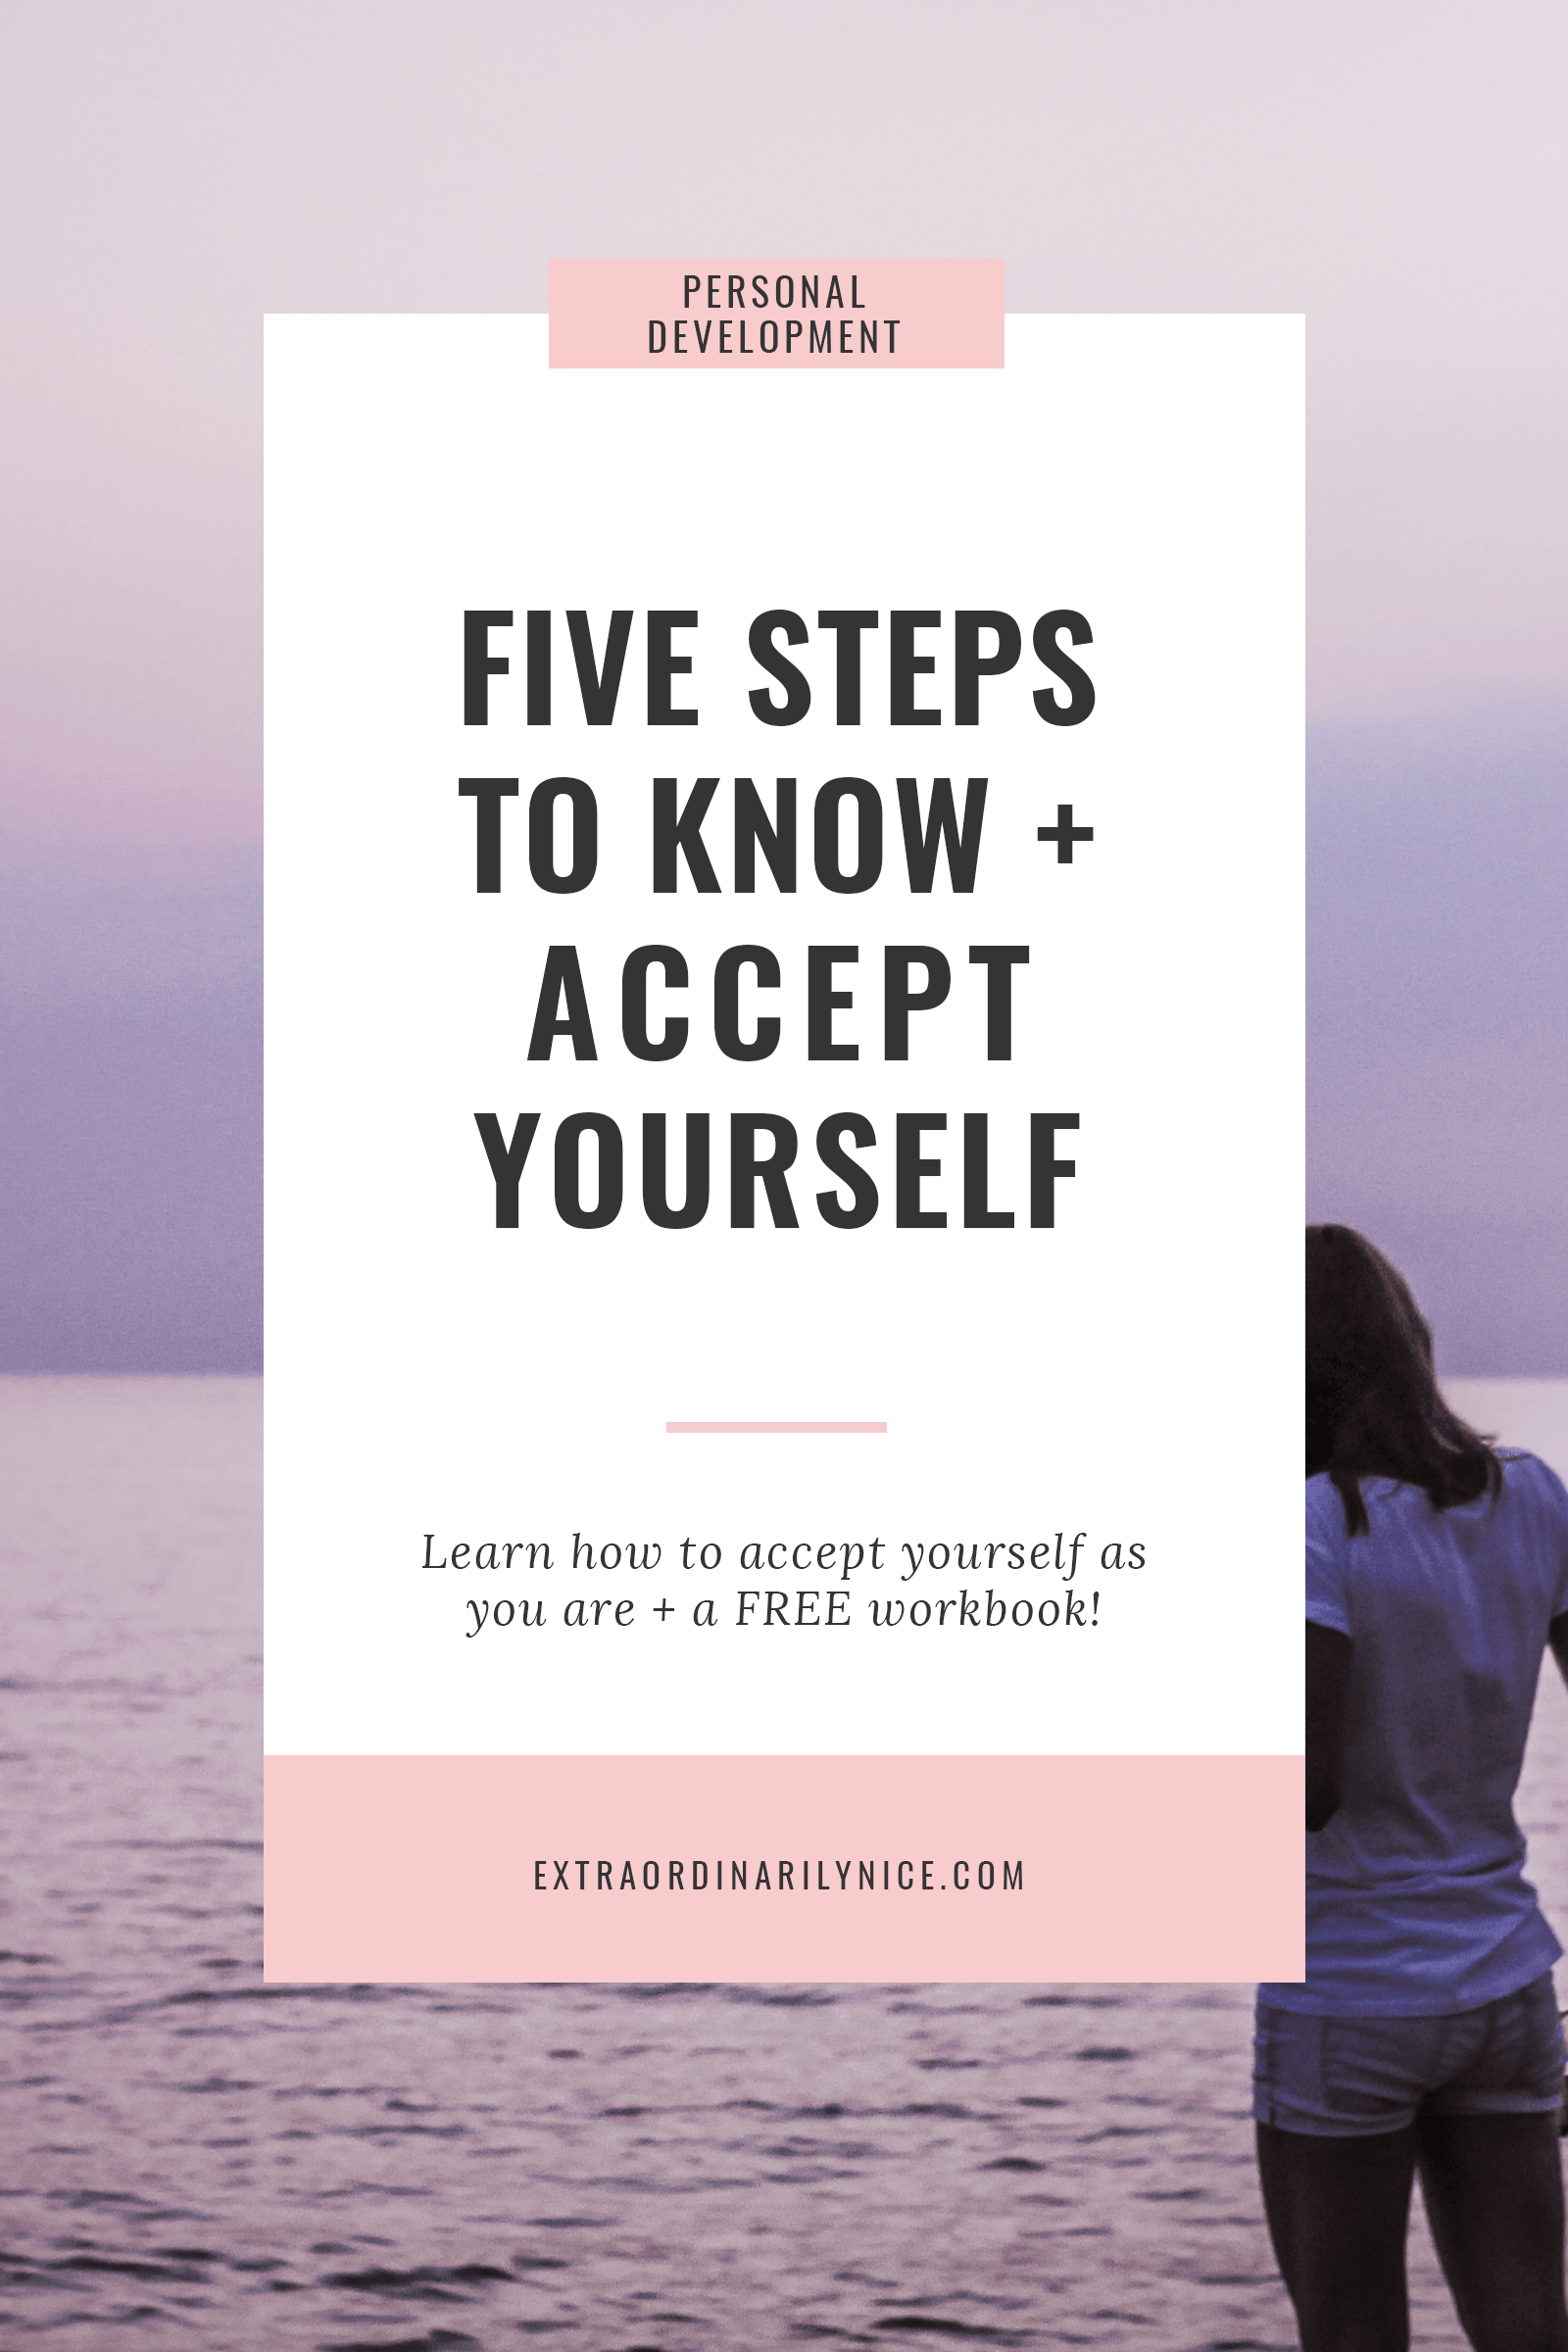 How to start self-improvement Five steps